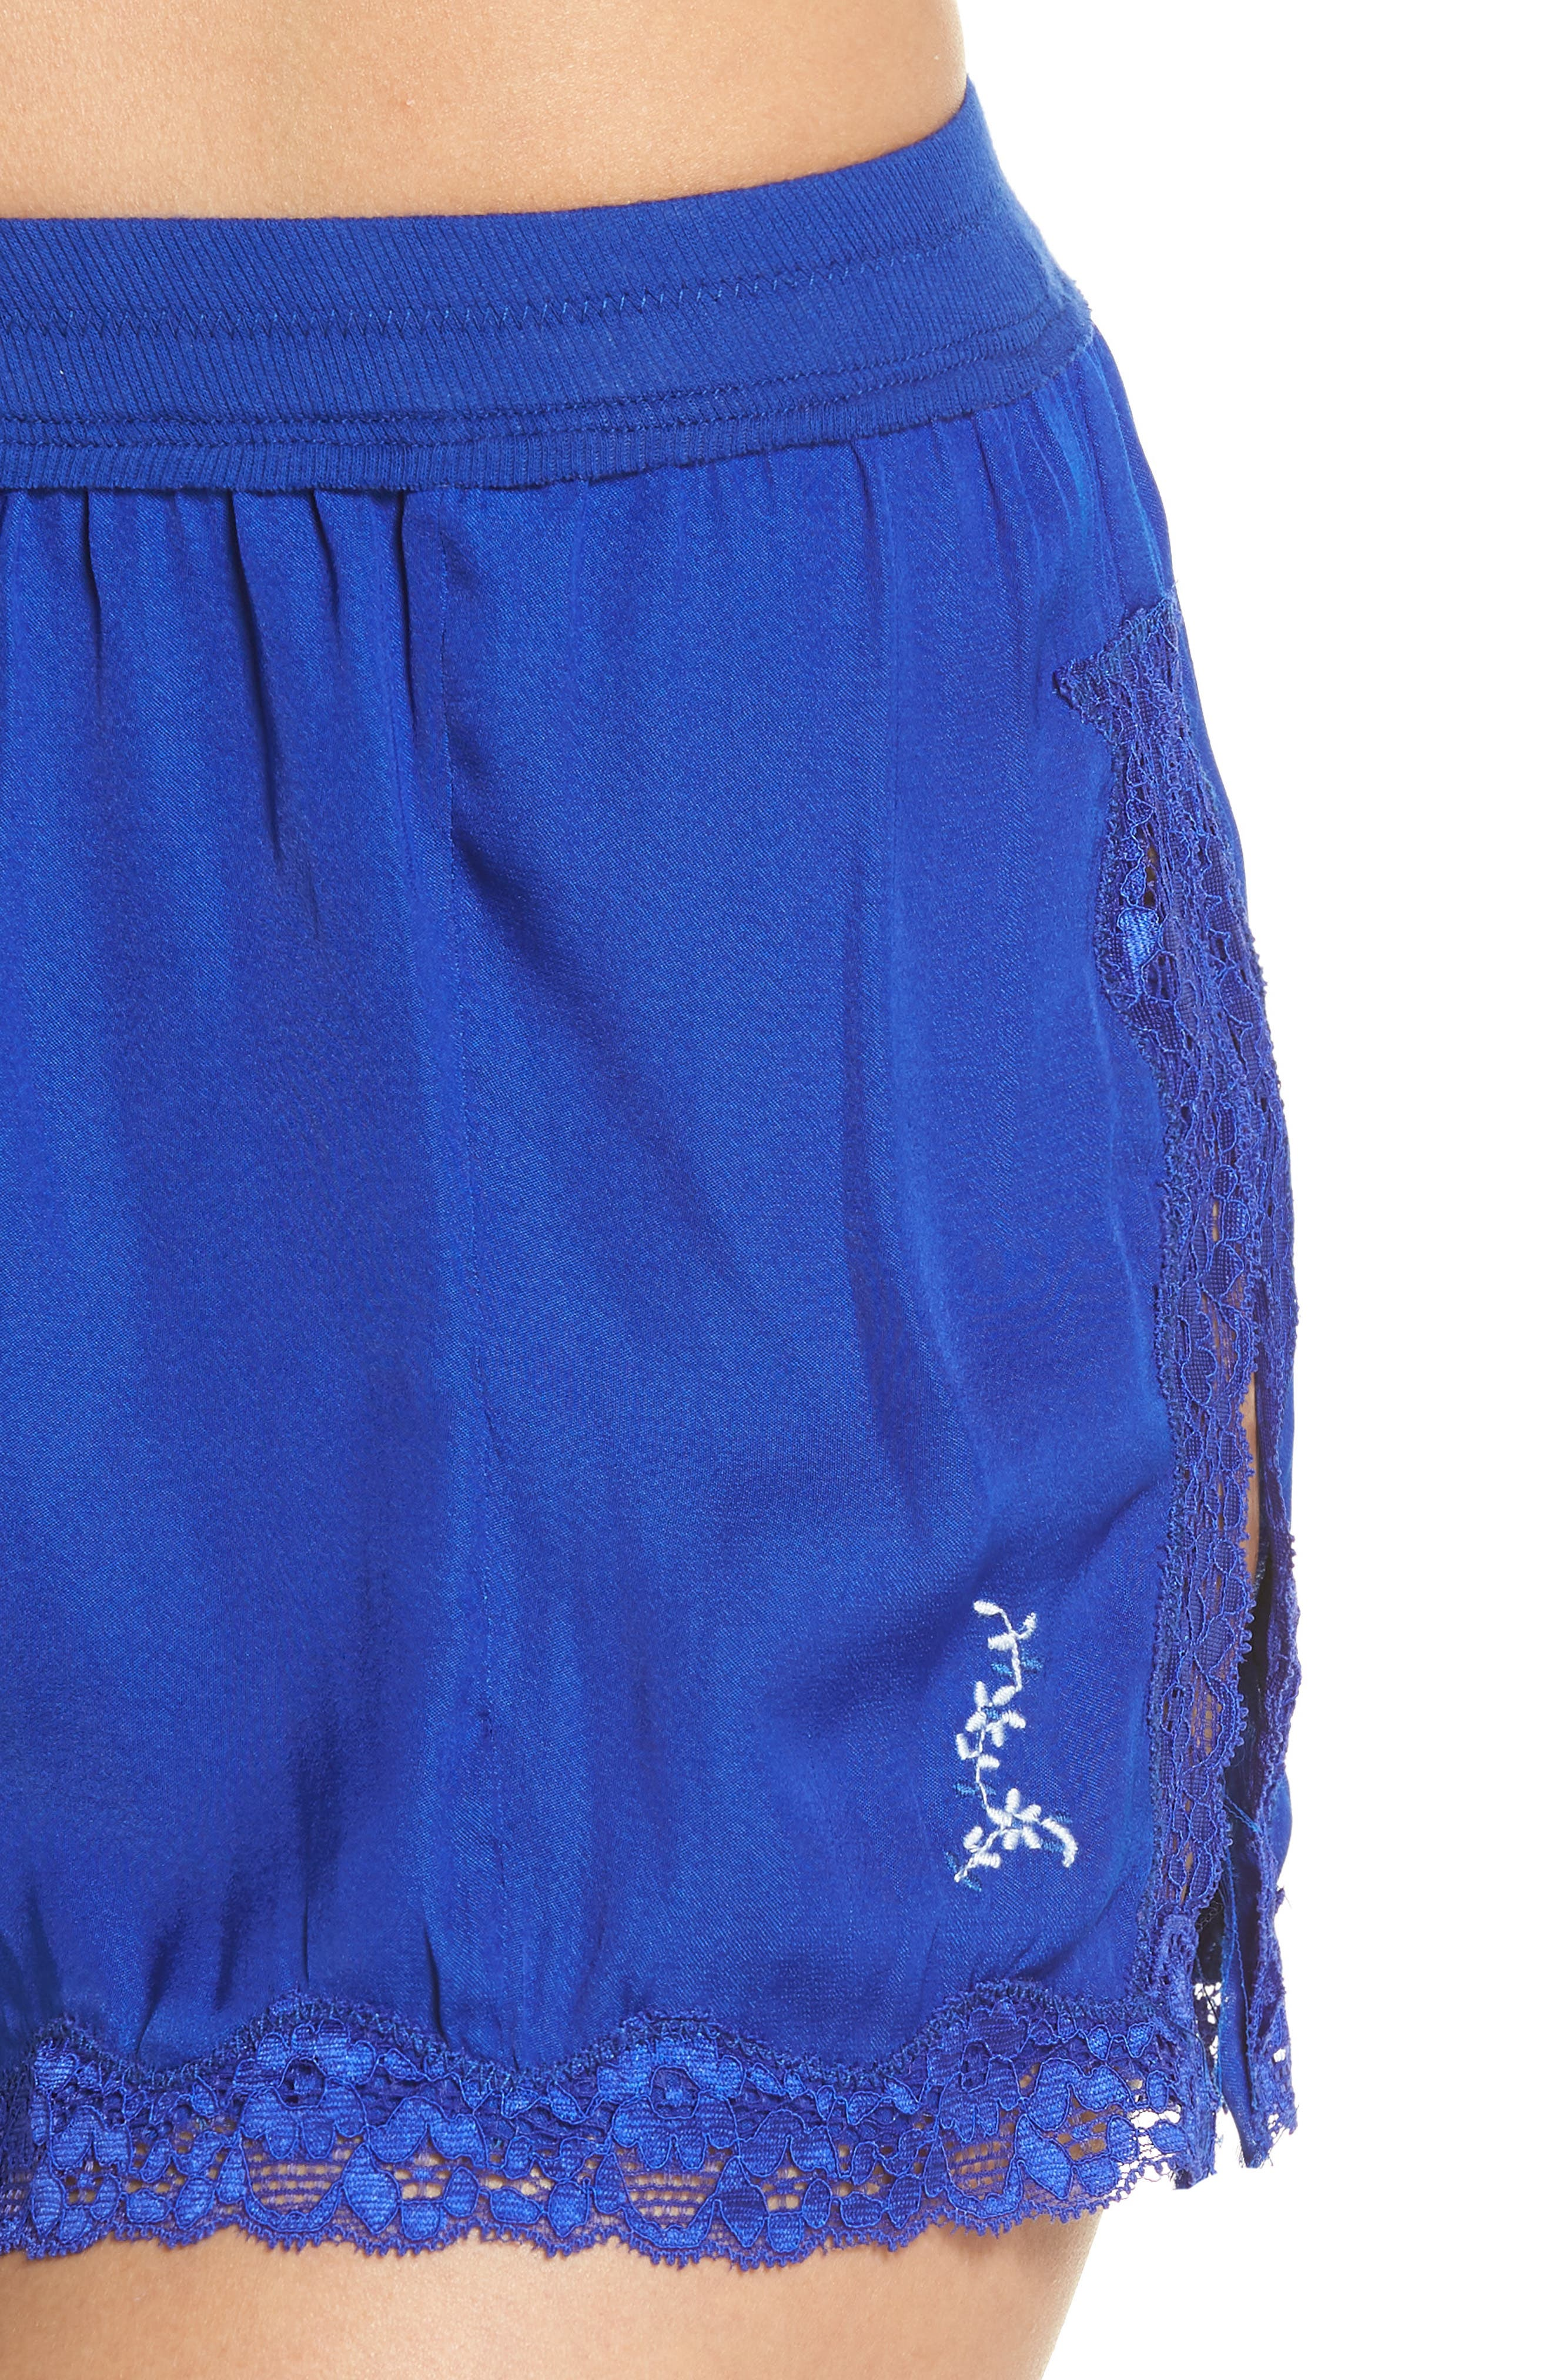 Intimately FP High Side Shorts,                             Alternate thumbnail 4, color,                             400